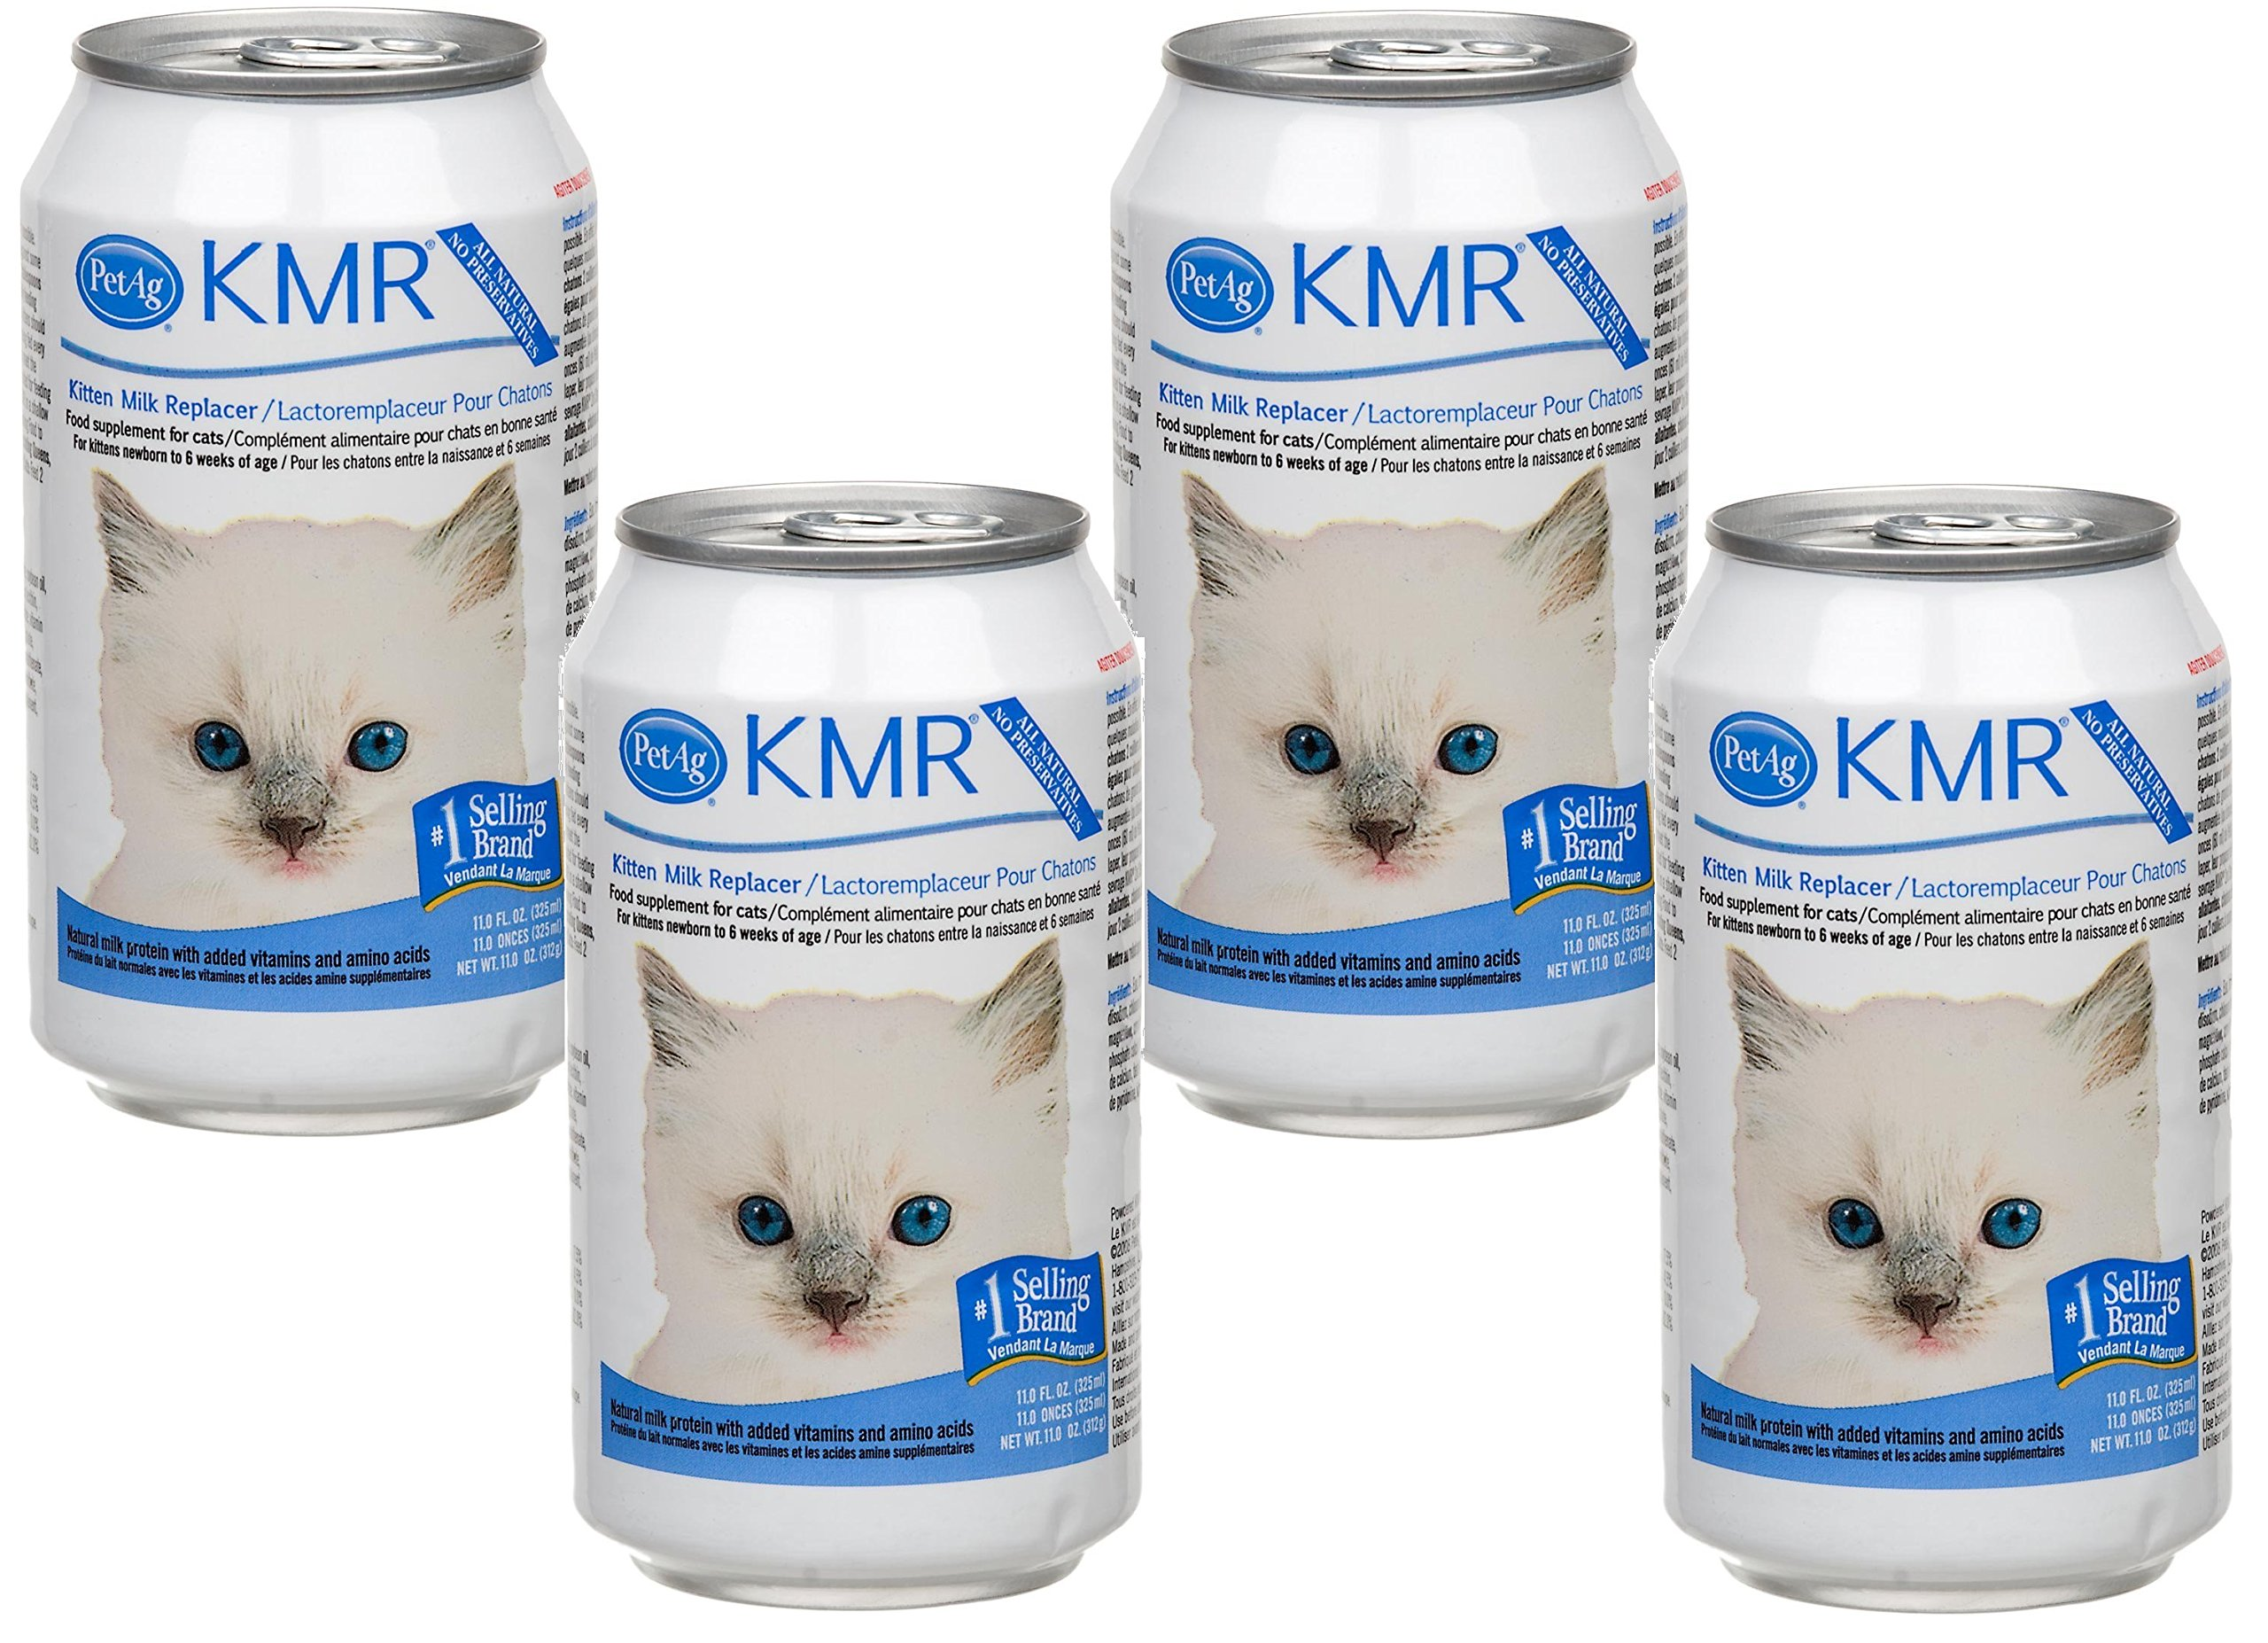 (4 Pack) KMR Liquid Replacer for Kittens and Cats, 11 Ounce Cans by Pet Ag